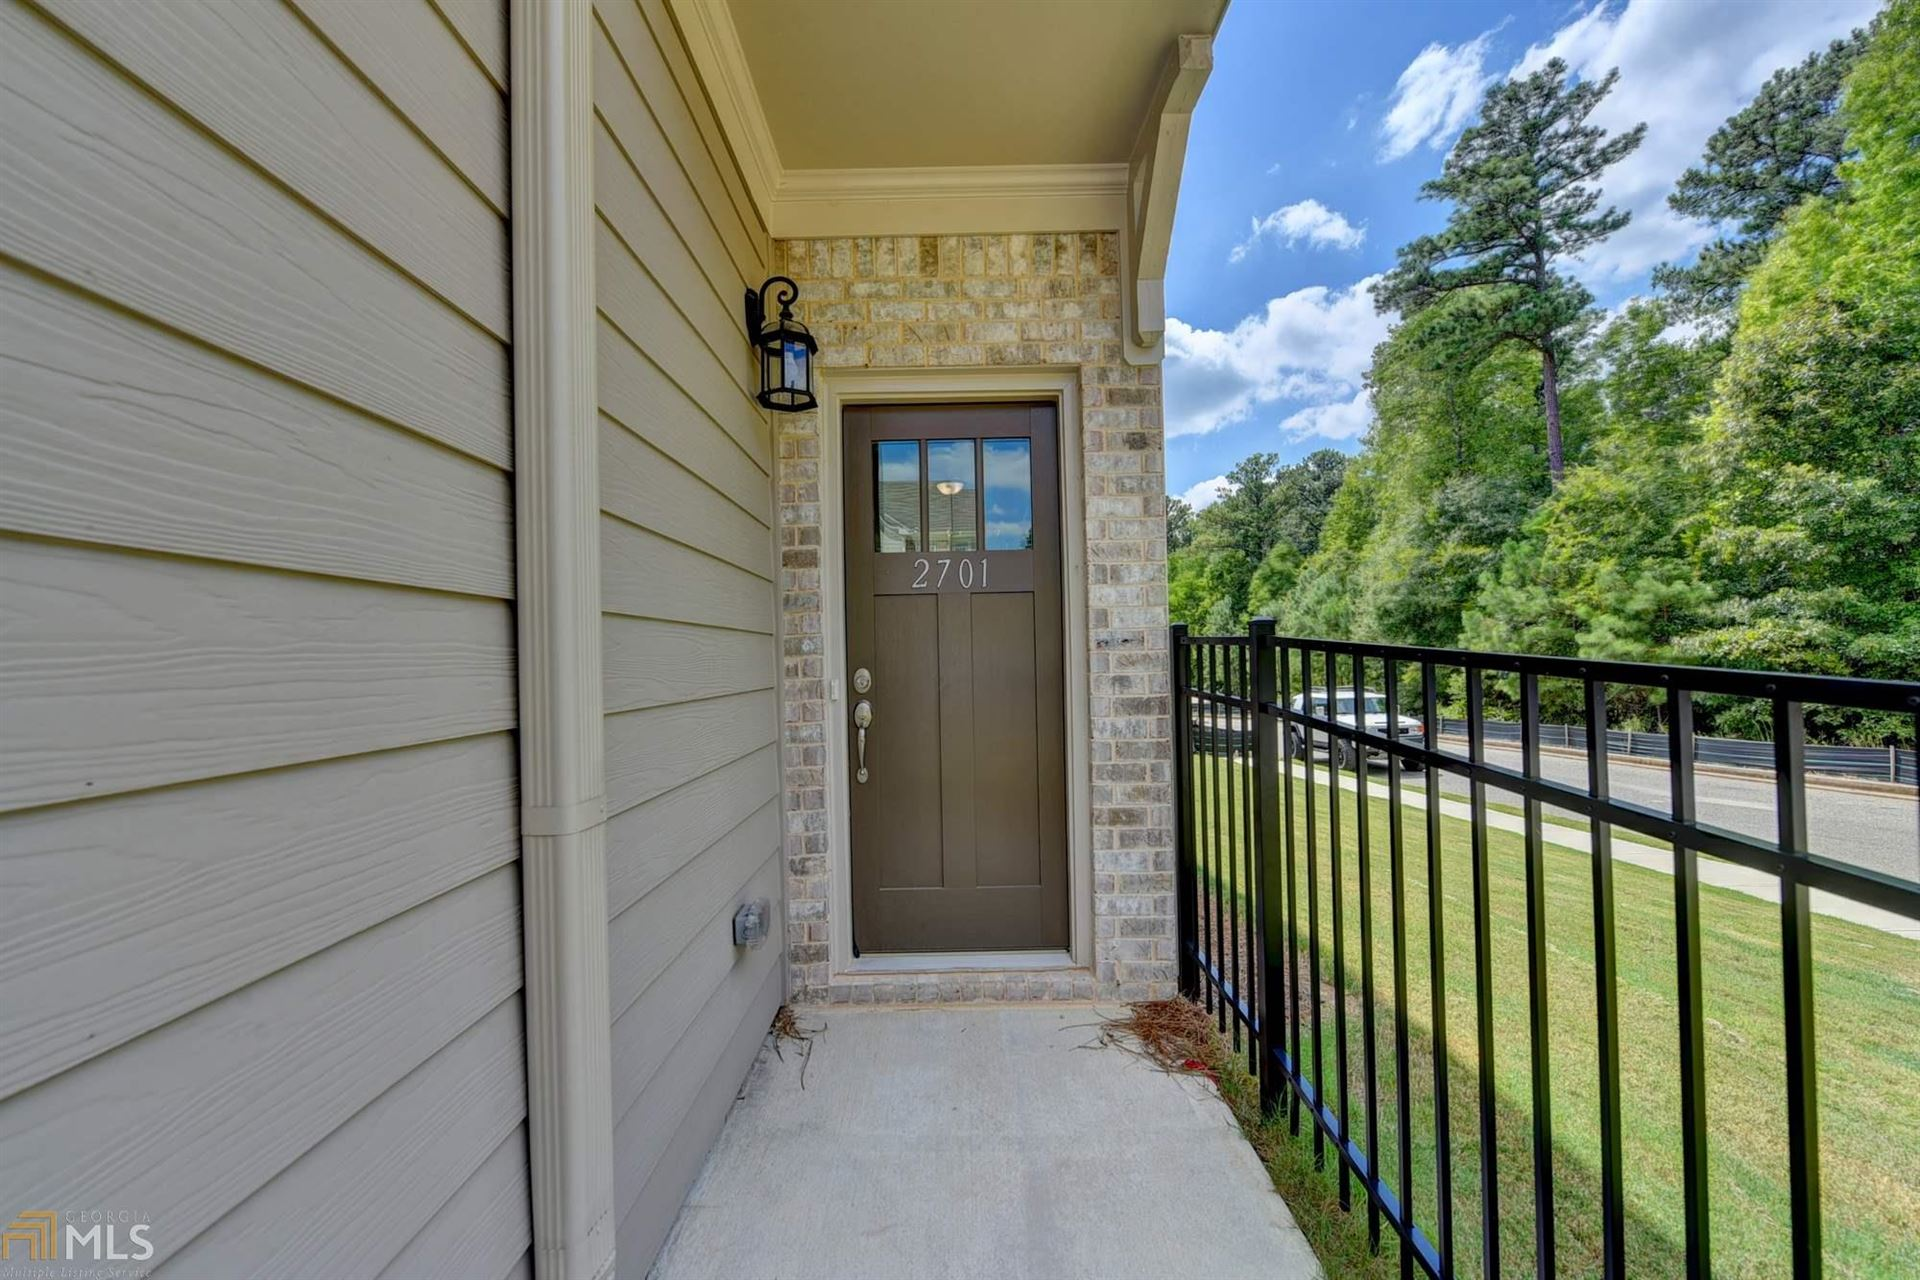 5321 Bentayga Dr, Lithonia, GA 30058 - MLS#: 8815972